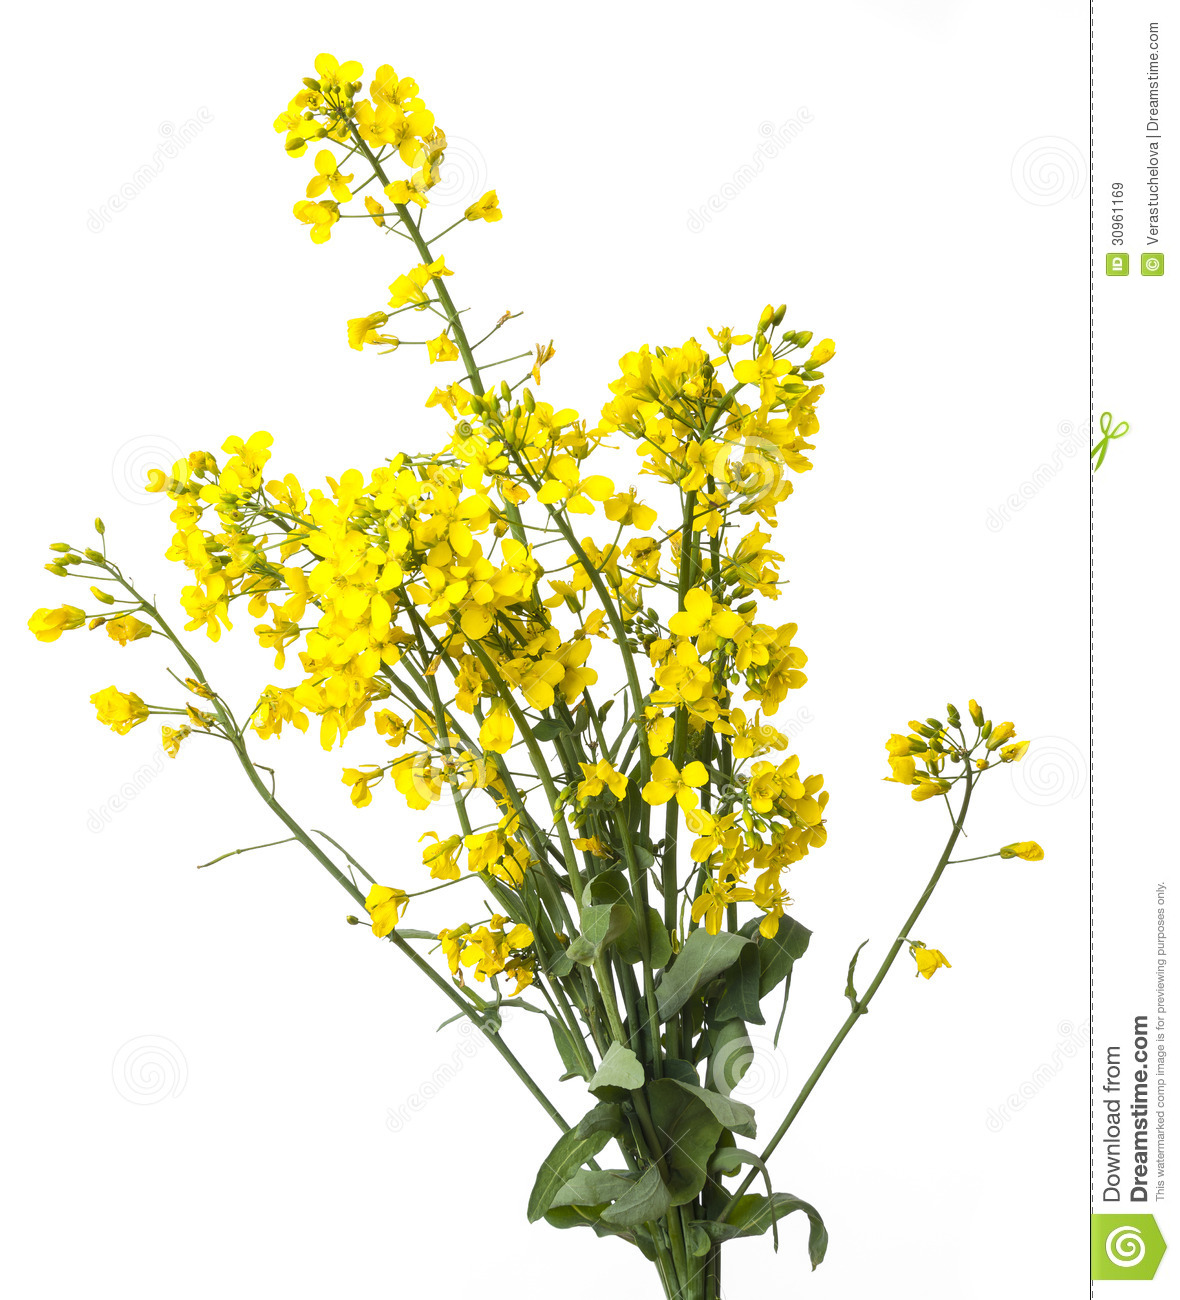 rapeseed plant royalty free stock images image 30961169